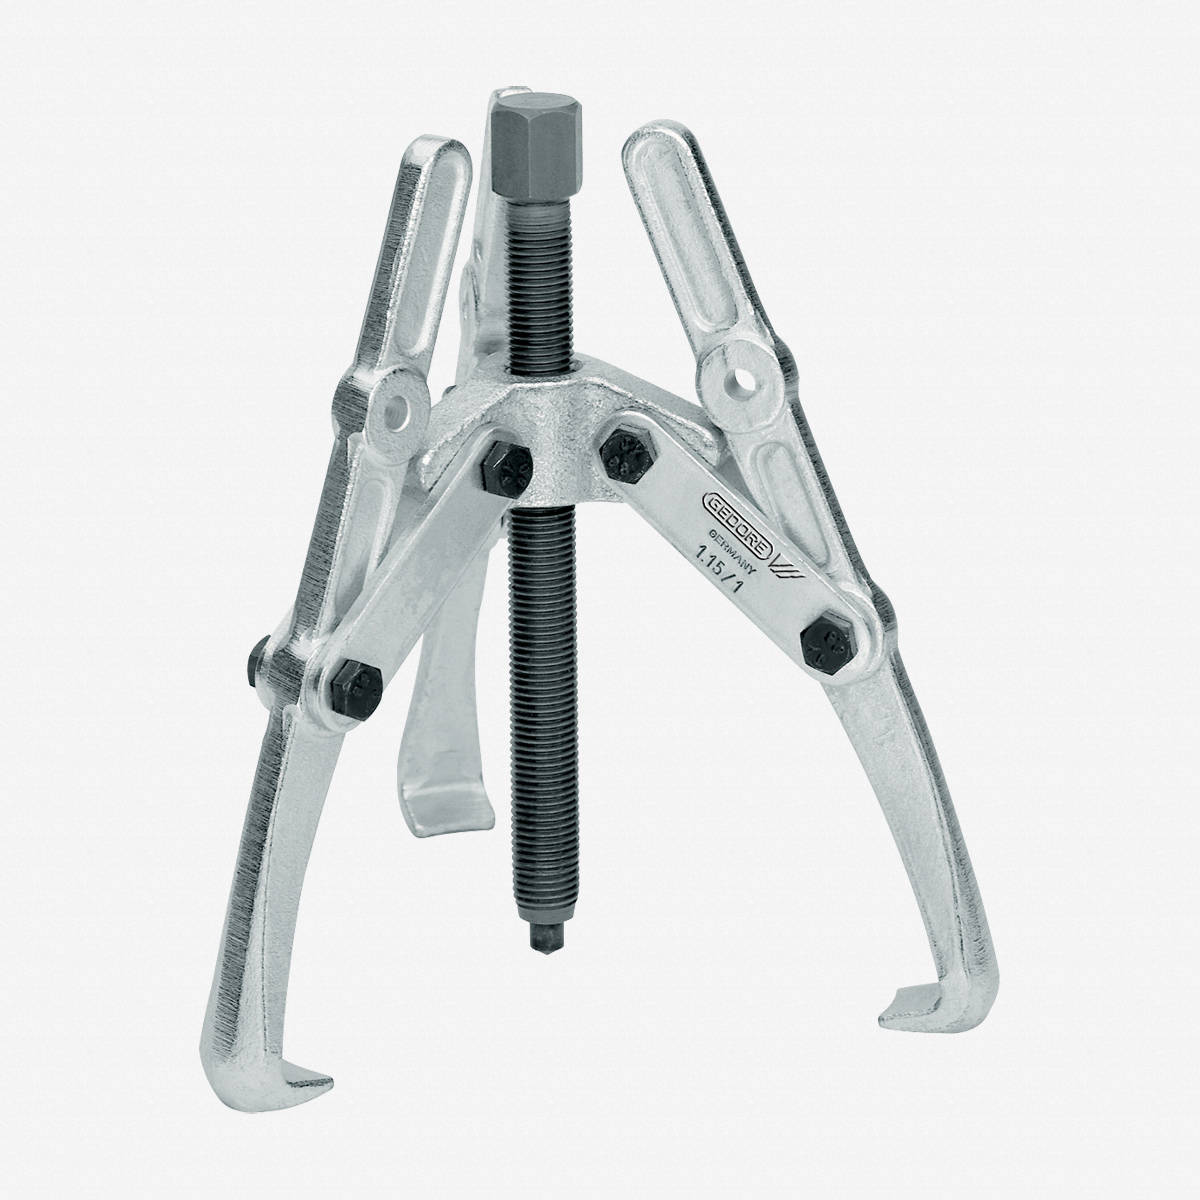 Gedore 1.15/1 Puller 3-arm pattern 130x140 mm - KC Tool